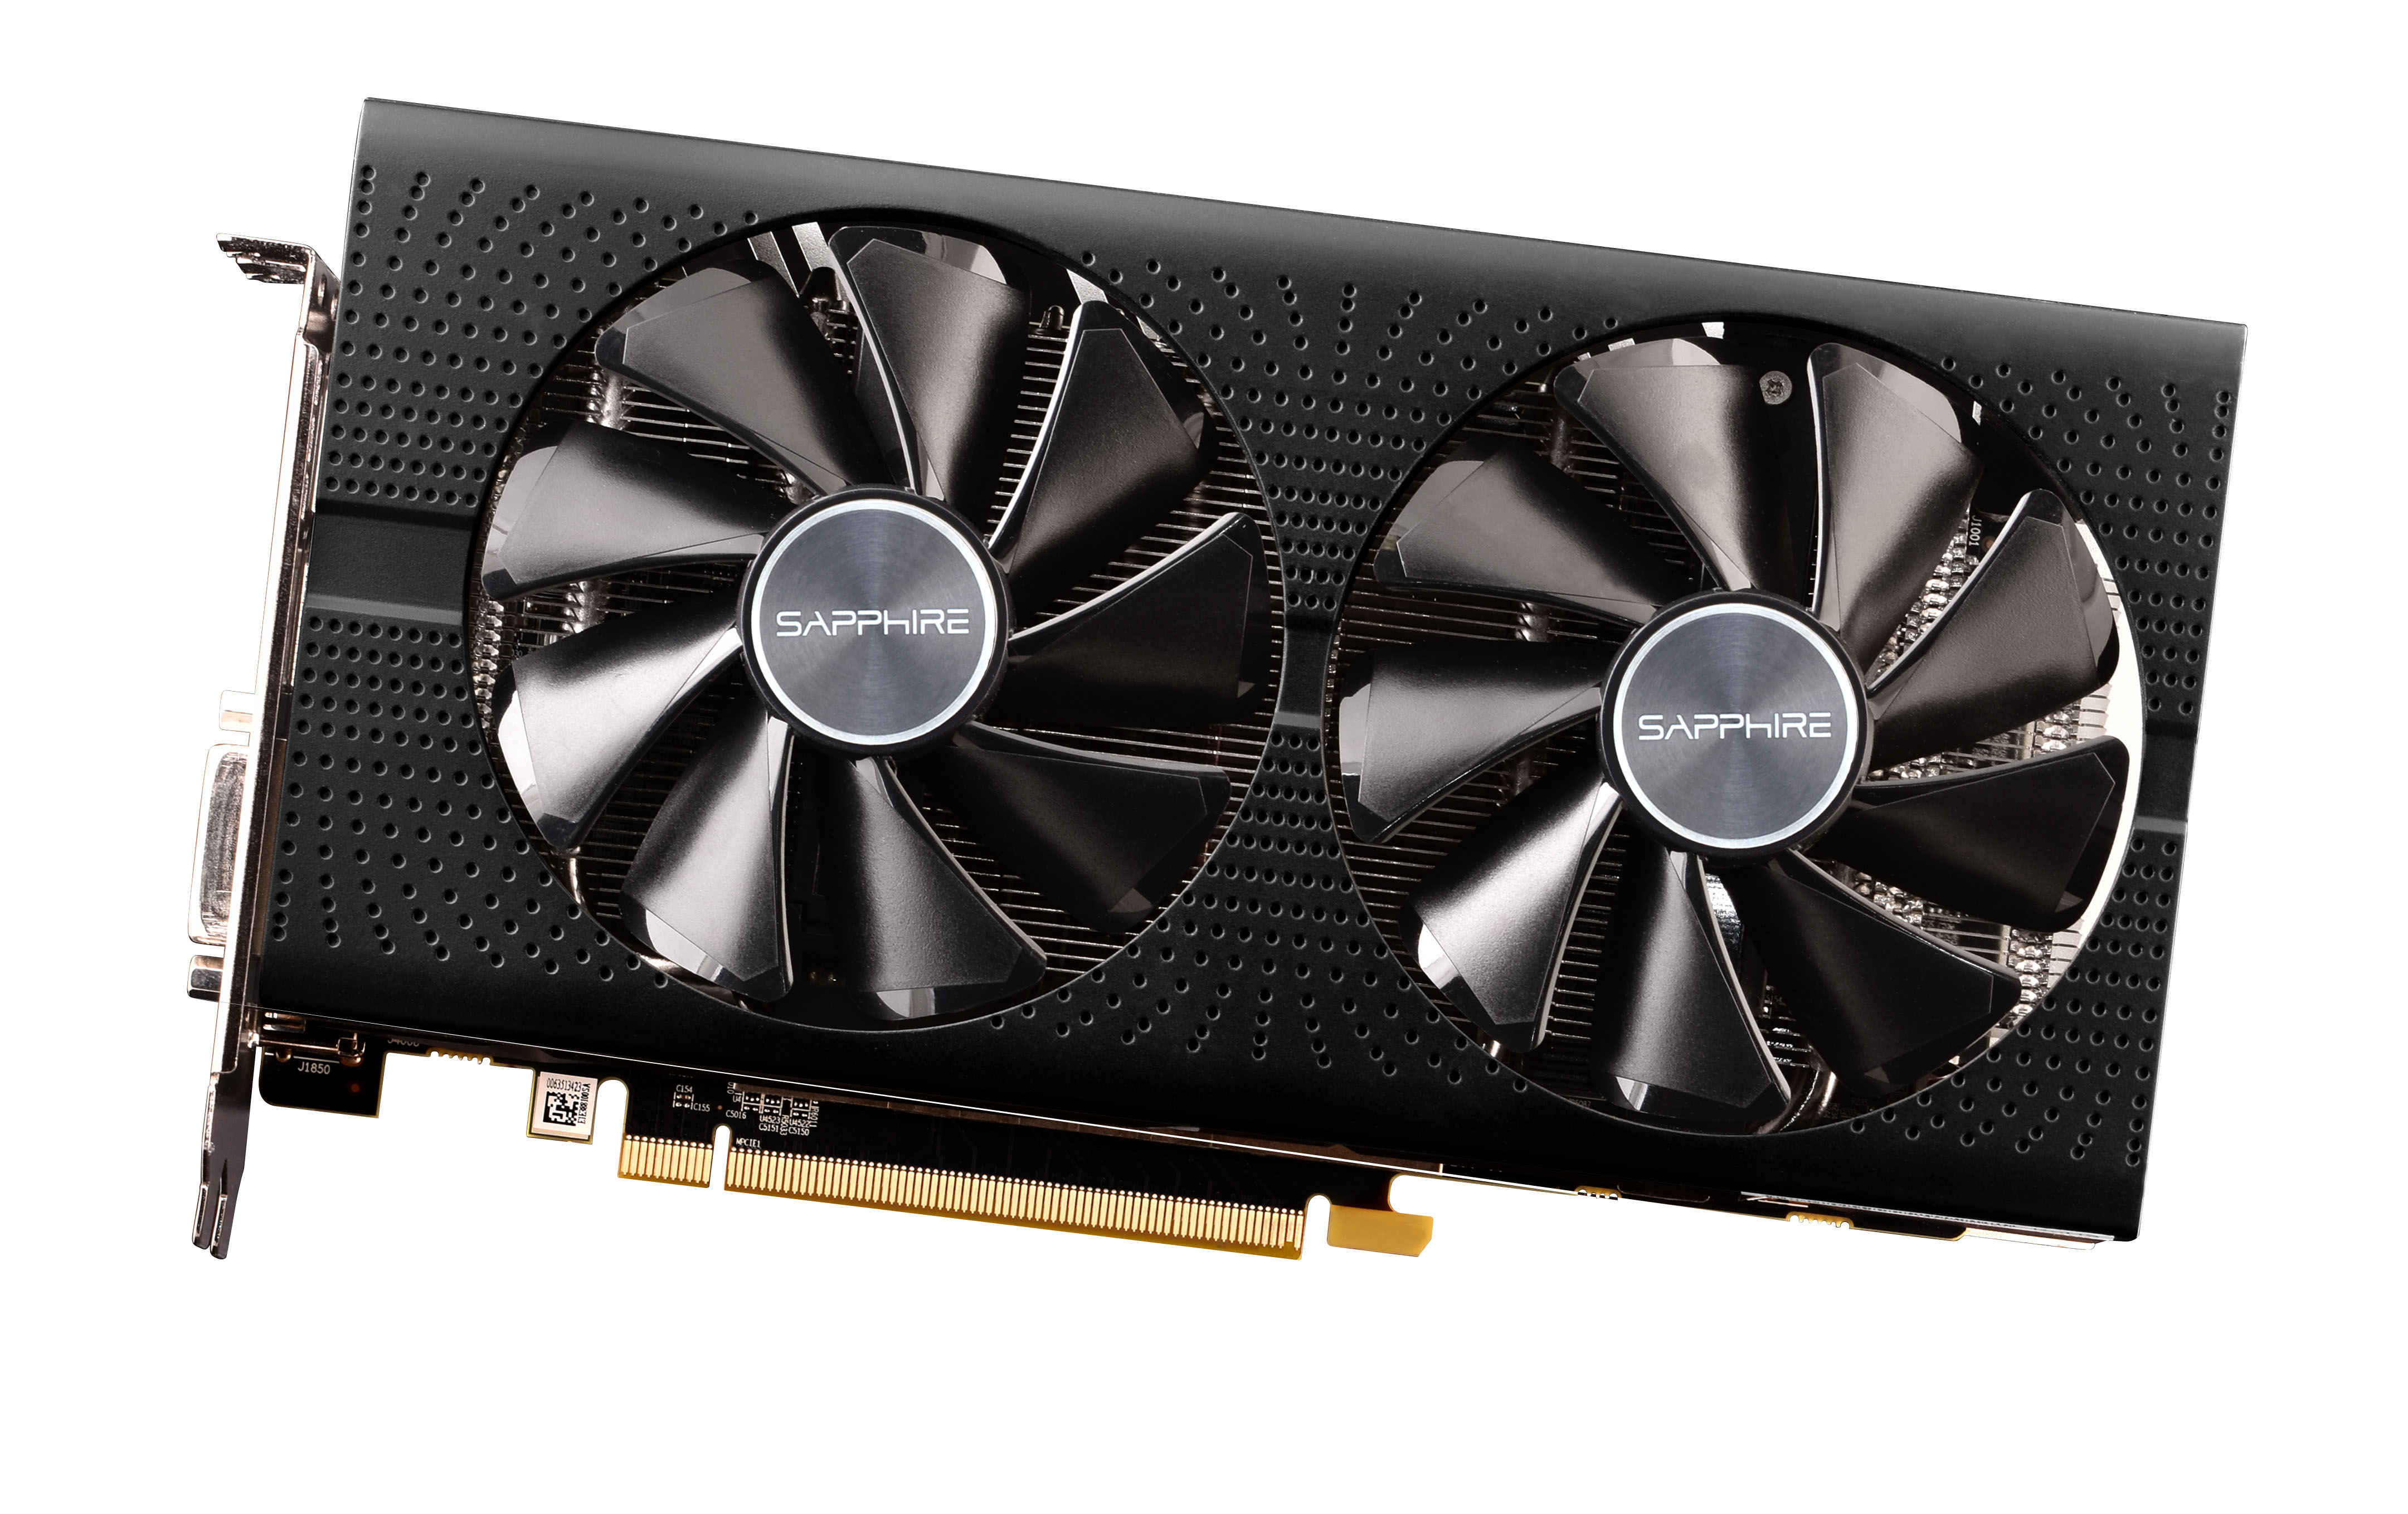 US $125 0 |USED,Sapphire RX 570 4G graphics cards 7000MHz GDDR5 256bits  HDMI+DVI+DP*3 PCI X16 express3-in Graphics Cards from Computer & Office on